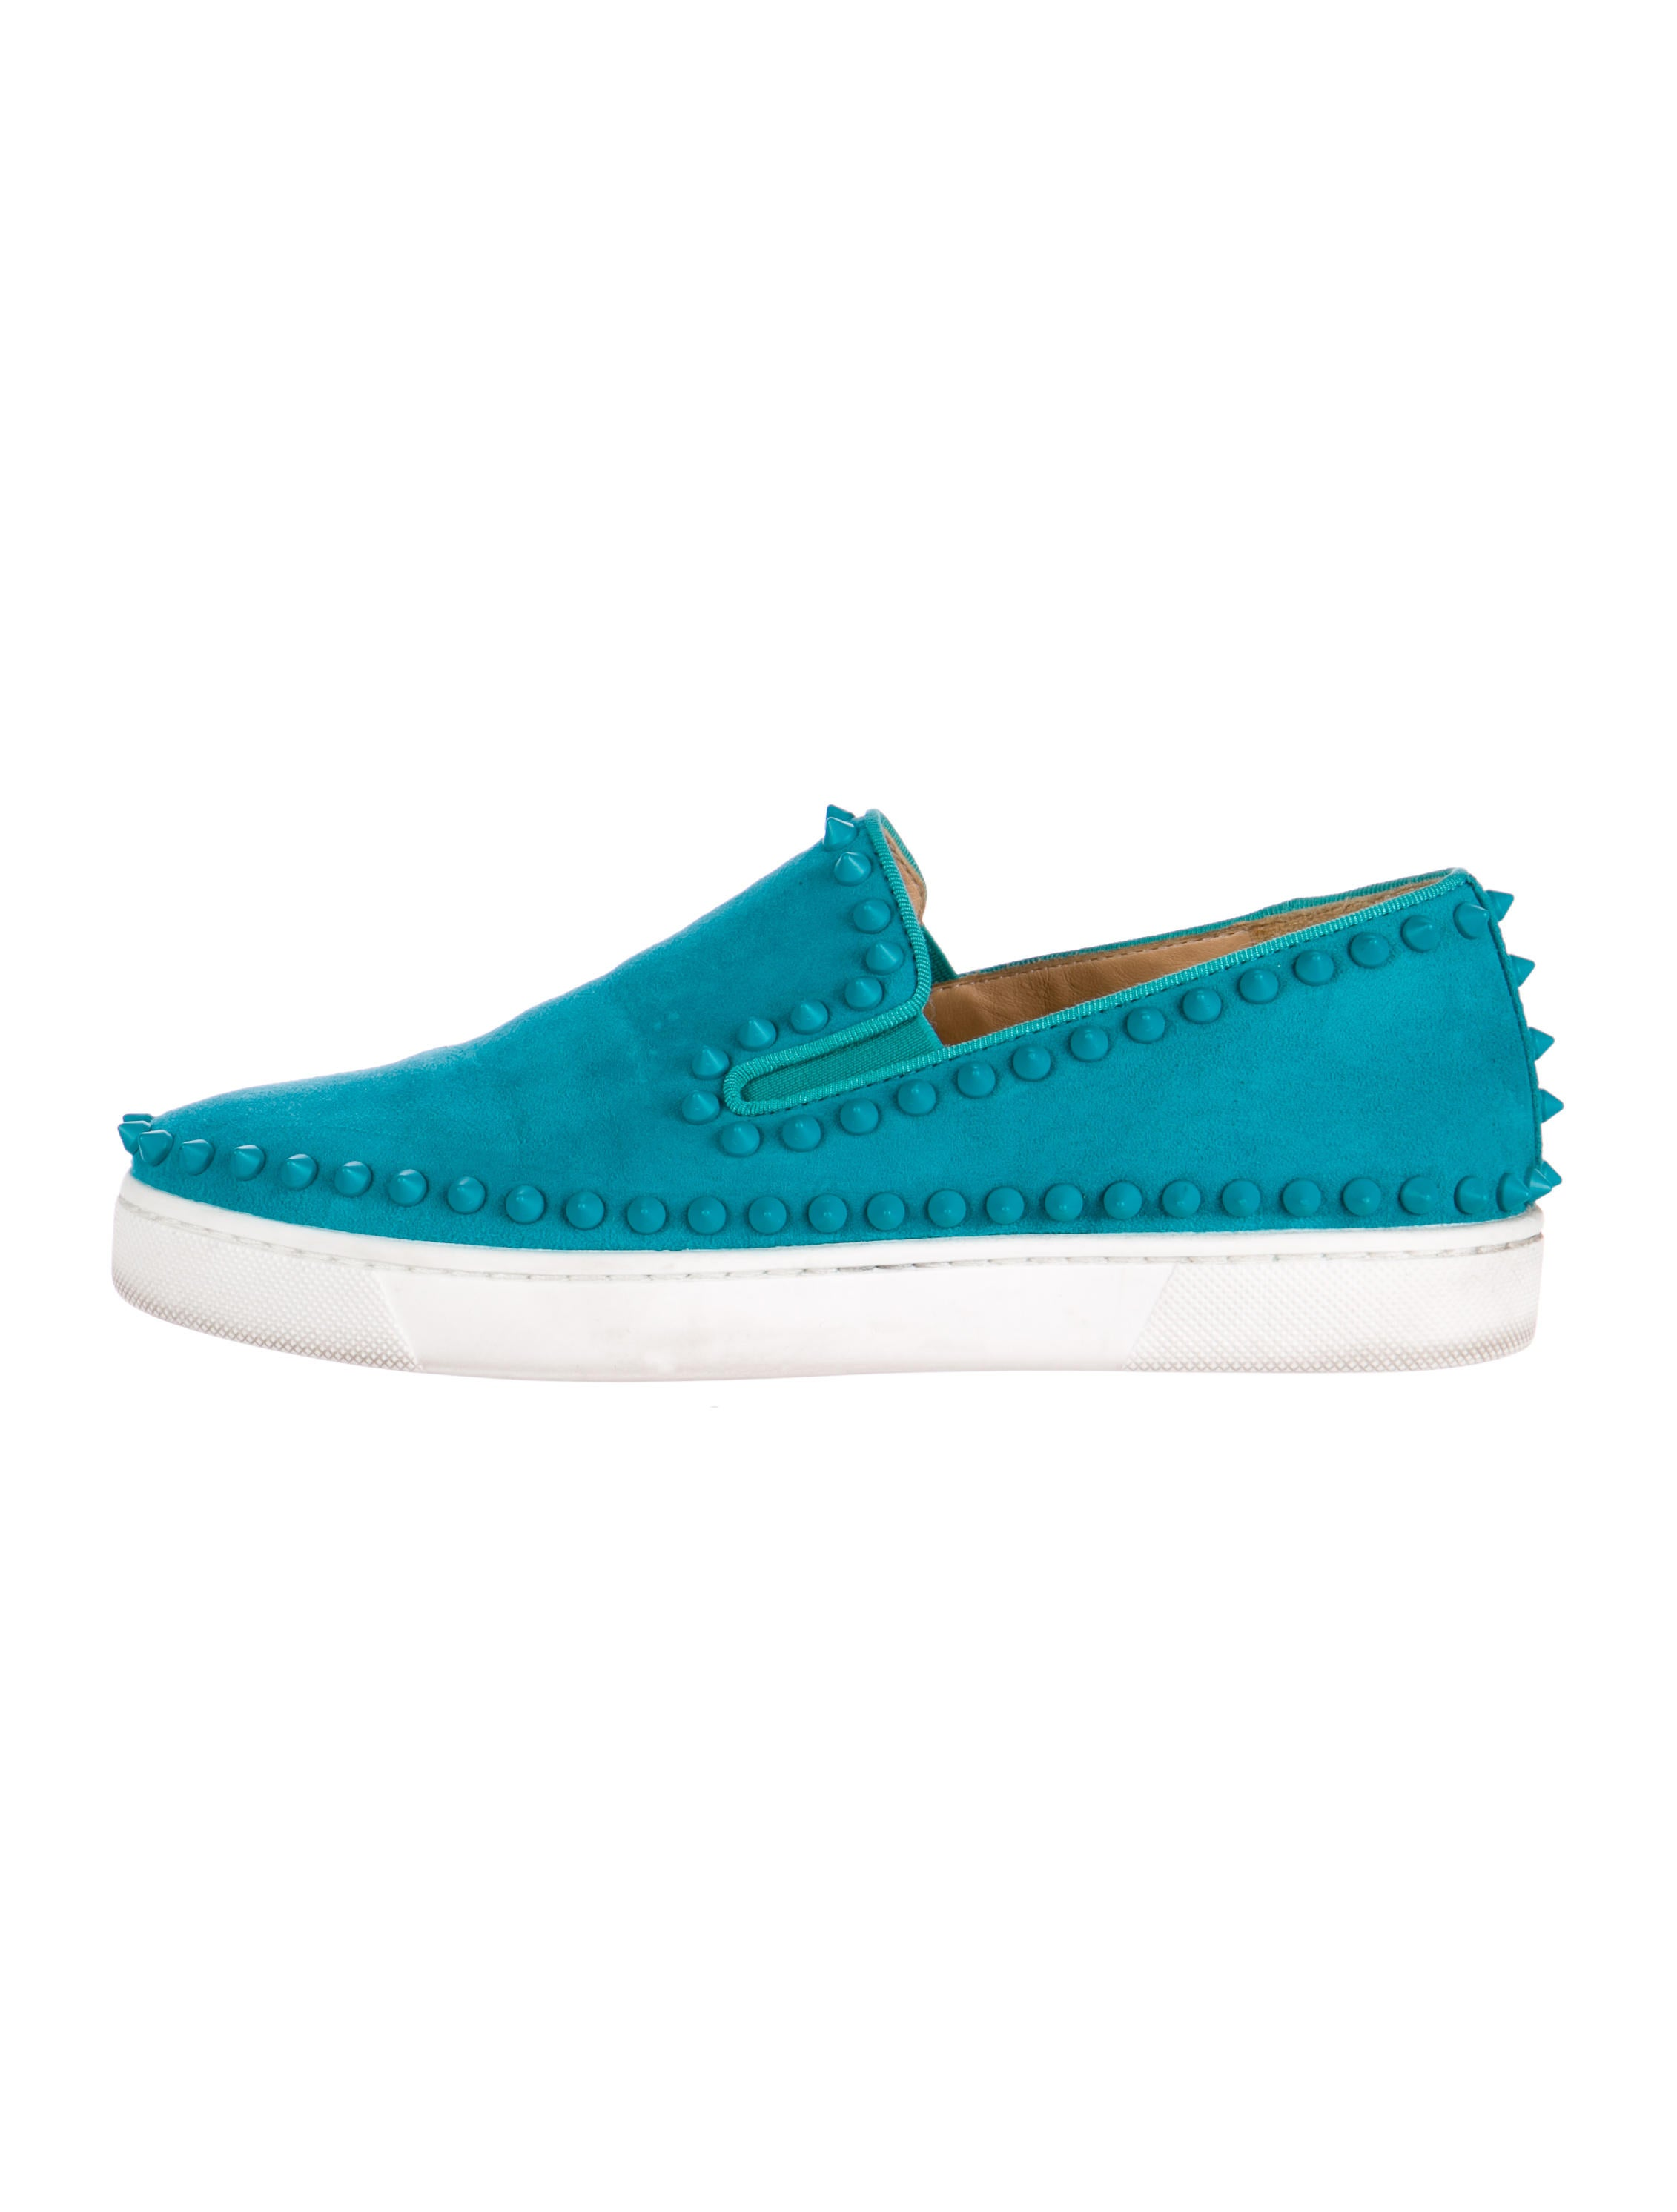 Christian Louboutin Pik Boat Slip-On Sneakers - Shoes - CHT43603 ...